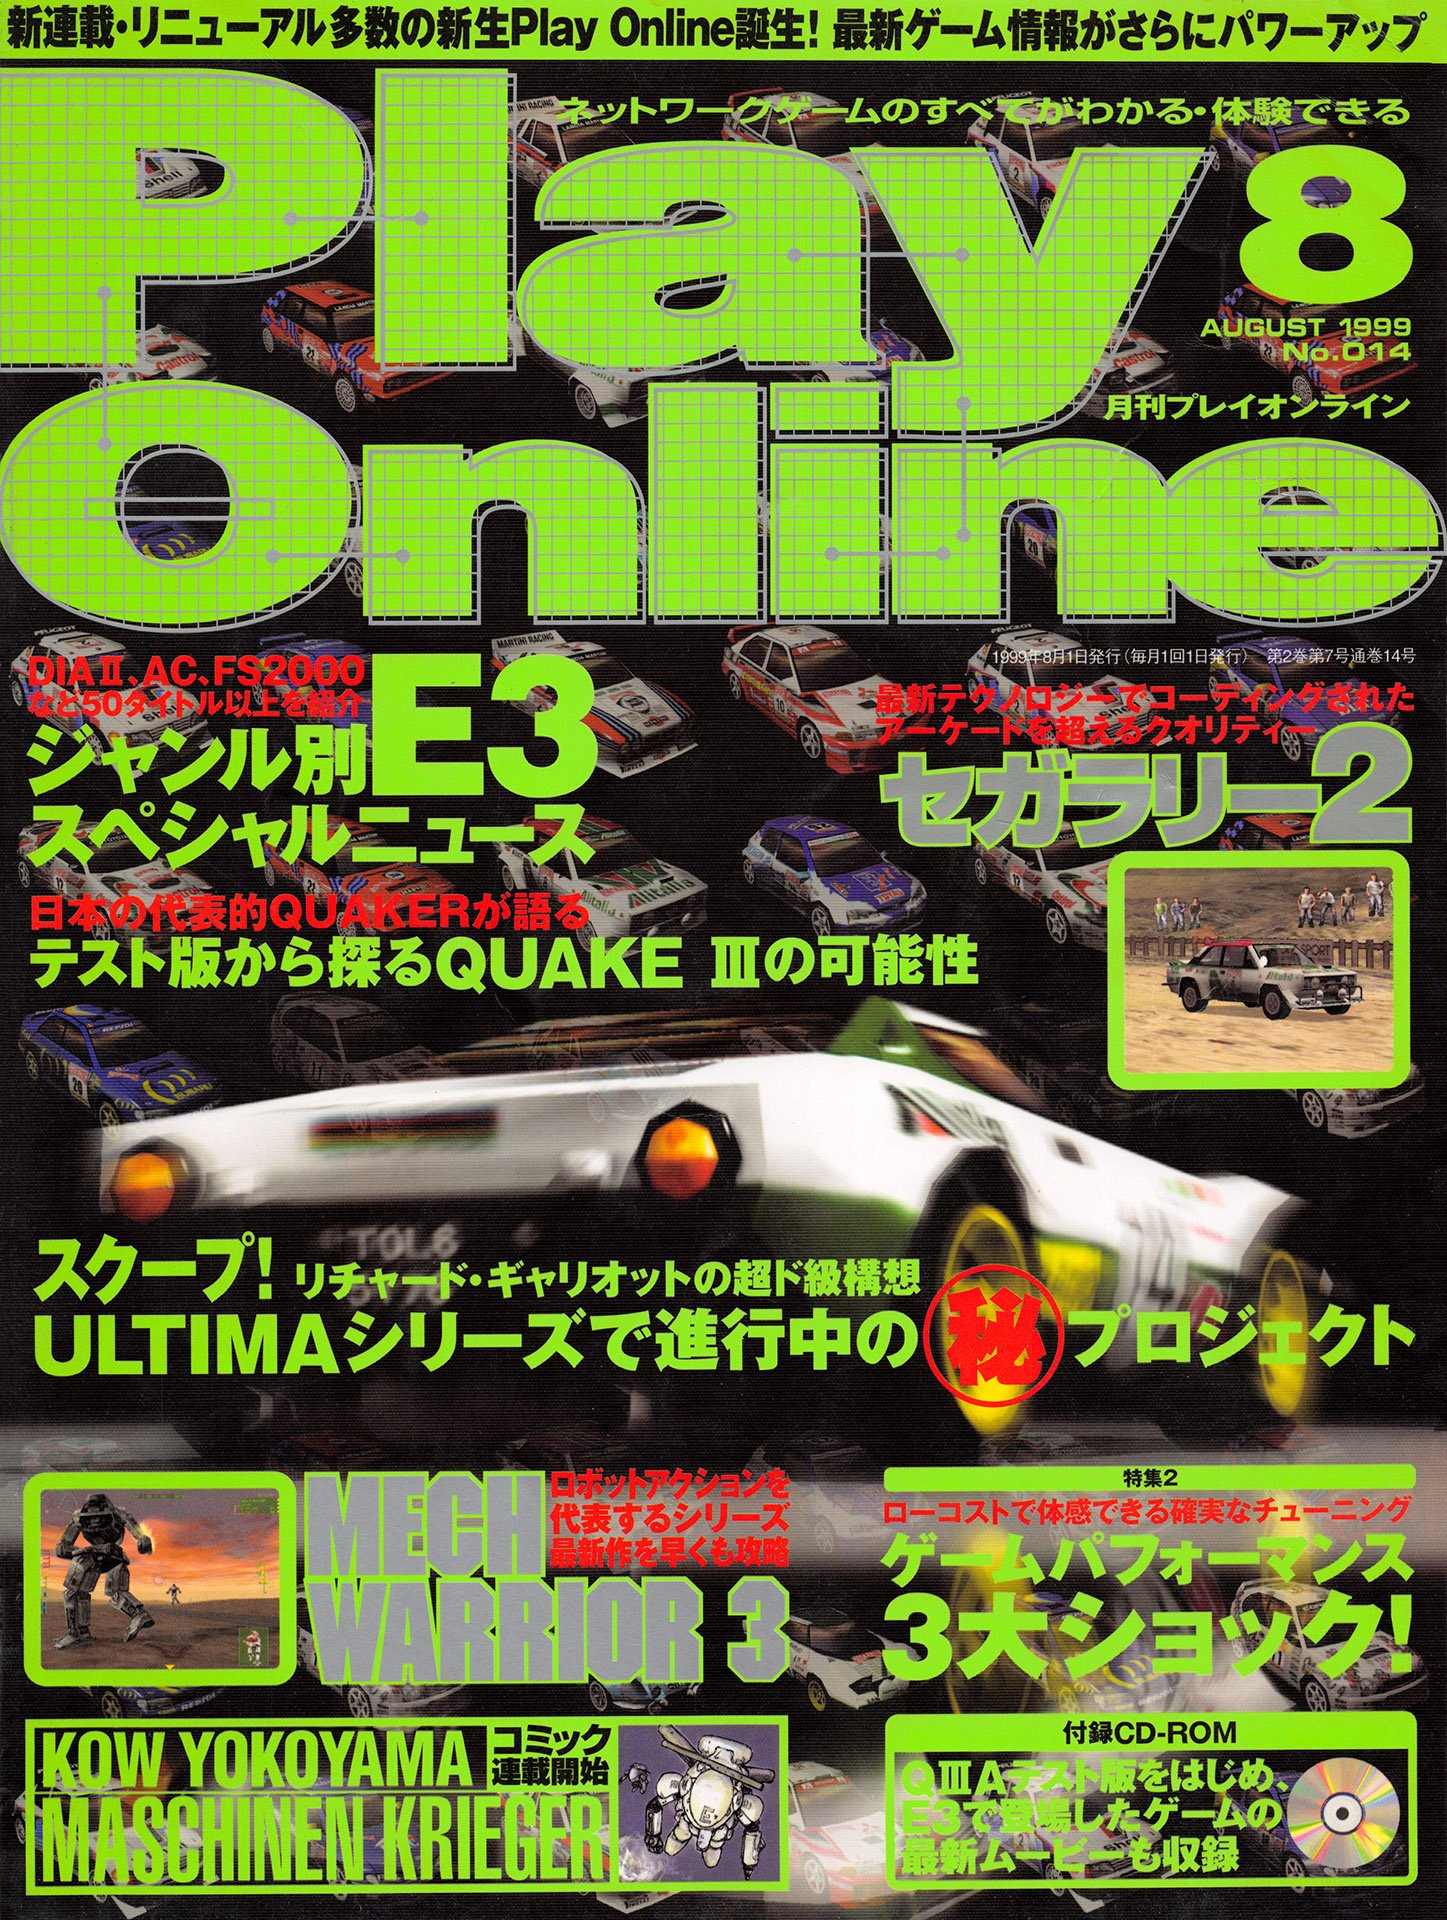 New Release - Play Online No.014 (August 1999)